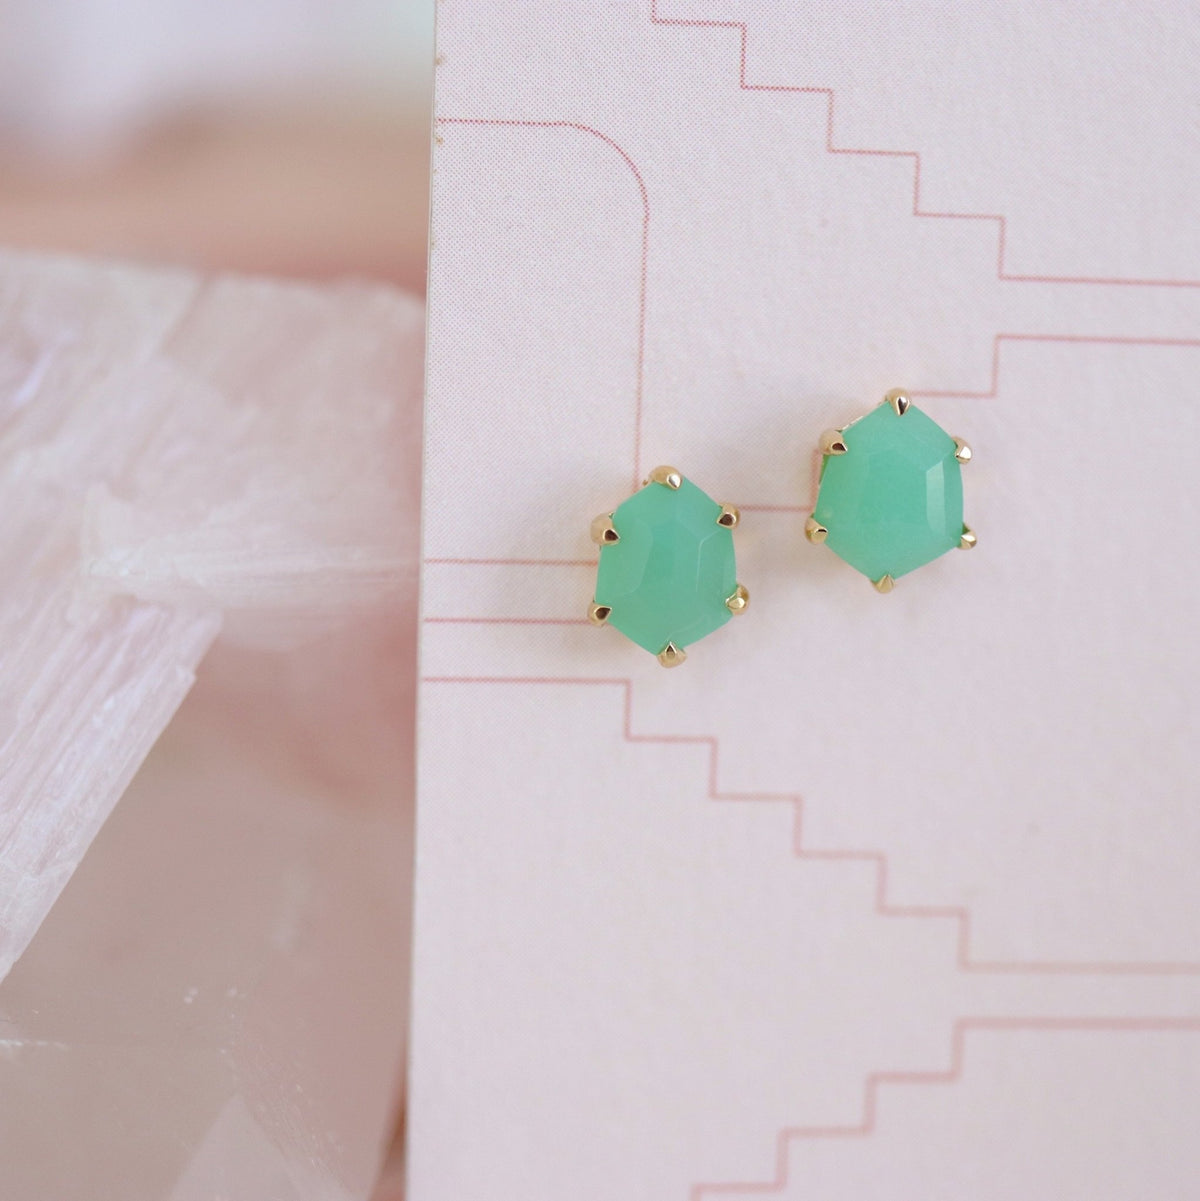 MINI HONOUR SHIELD STUD EARRINGS - SEAFOAM CHRYSOPRASE & GOLD - SO PRETTY CARA COTTER